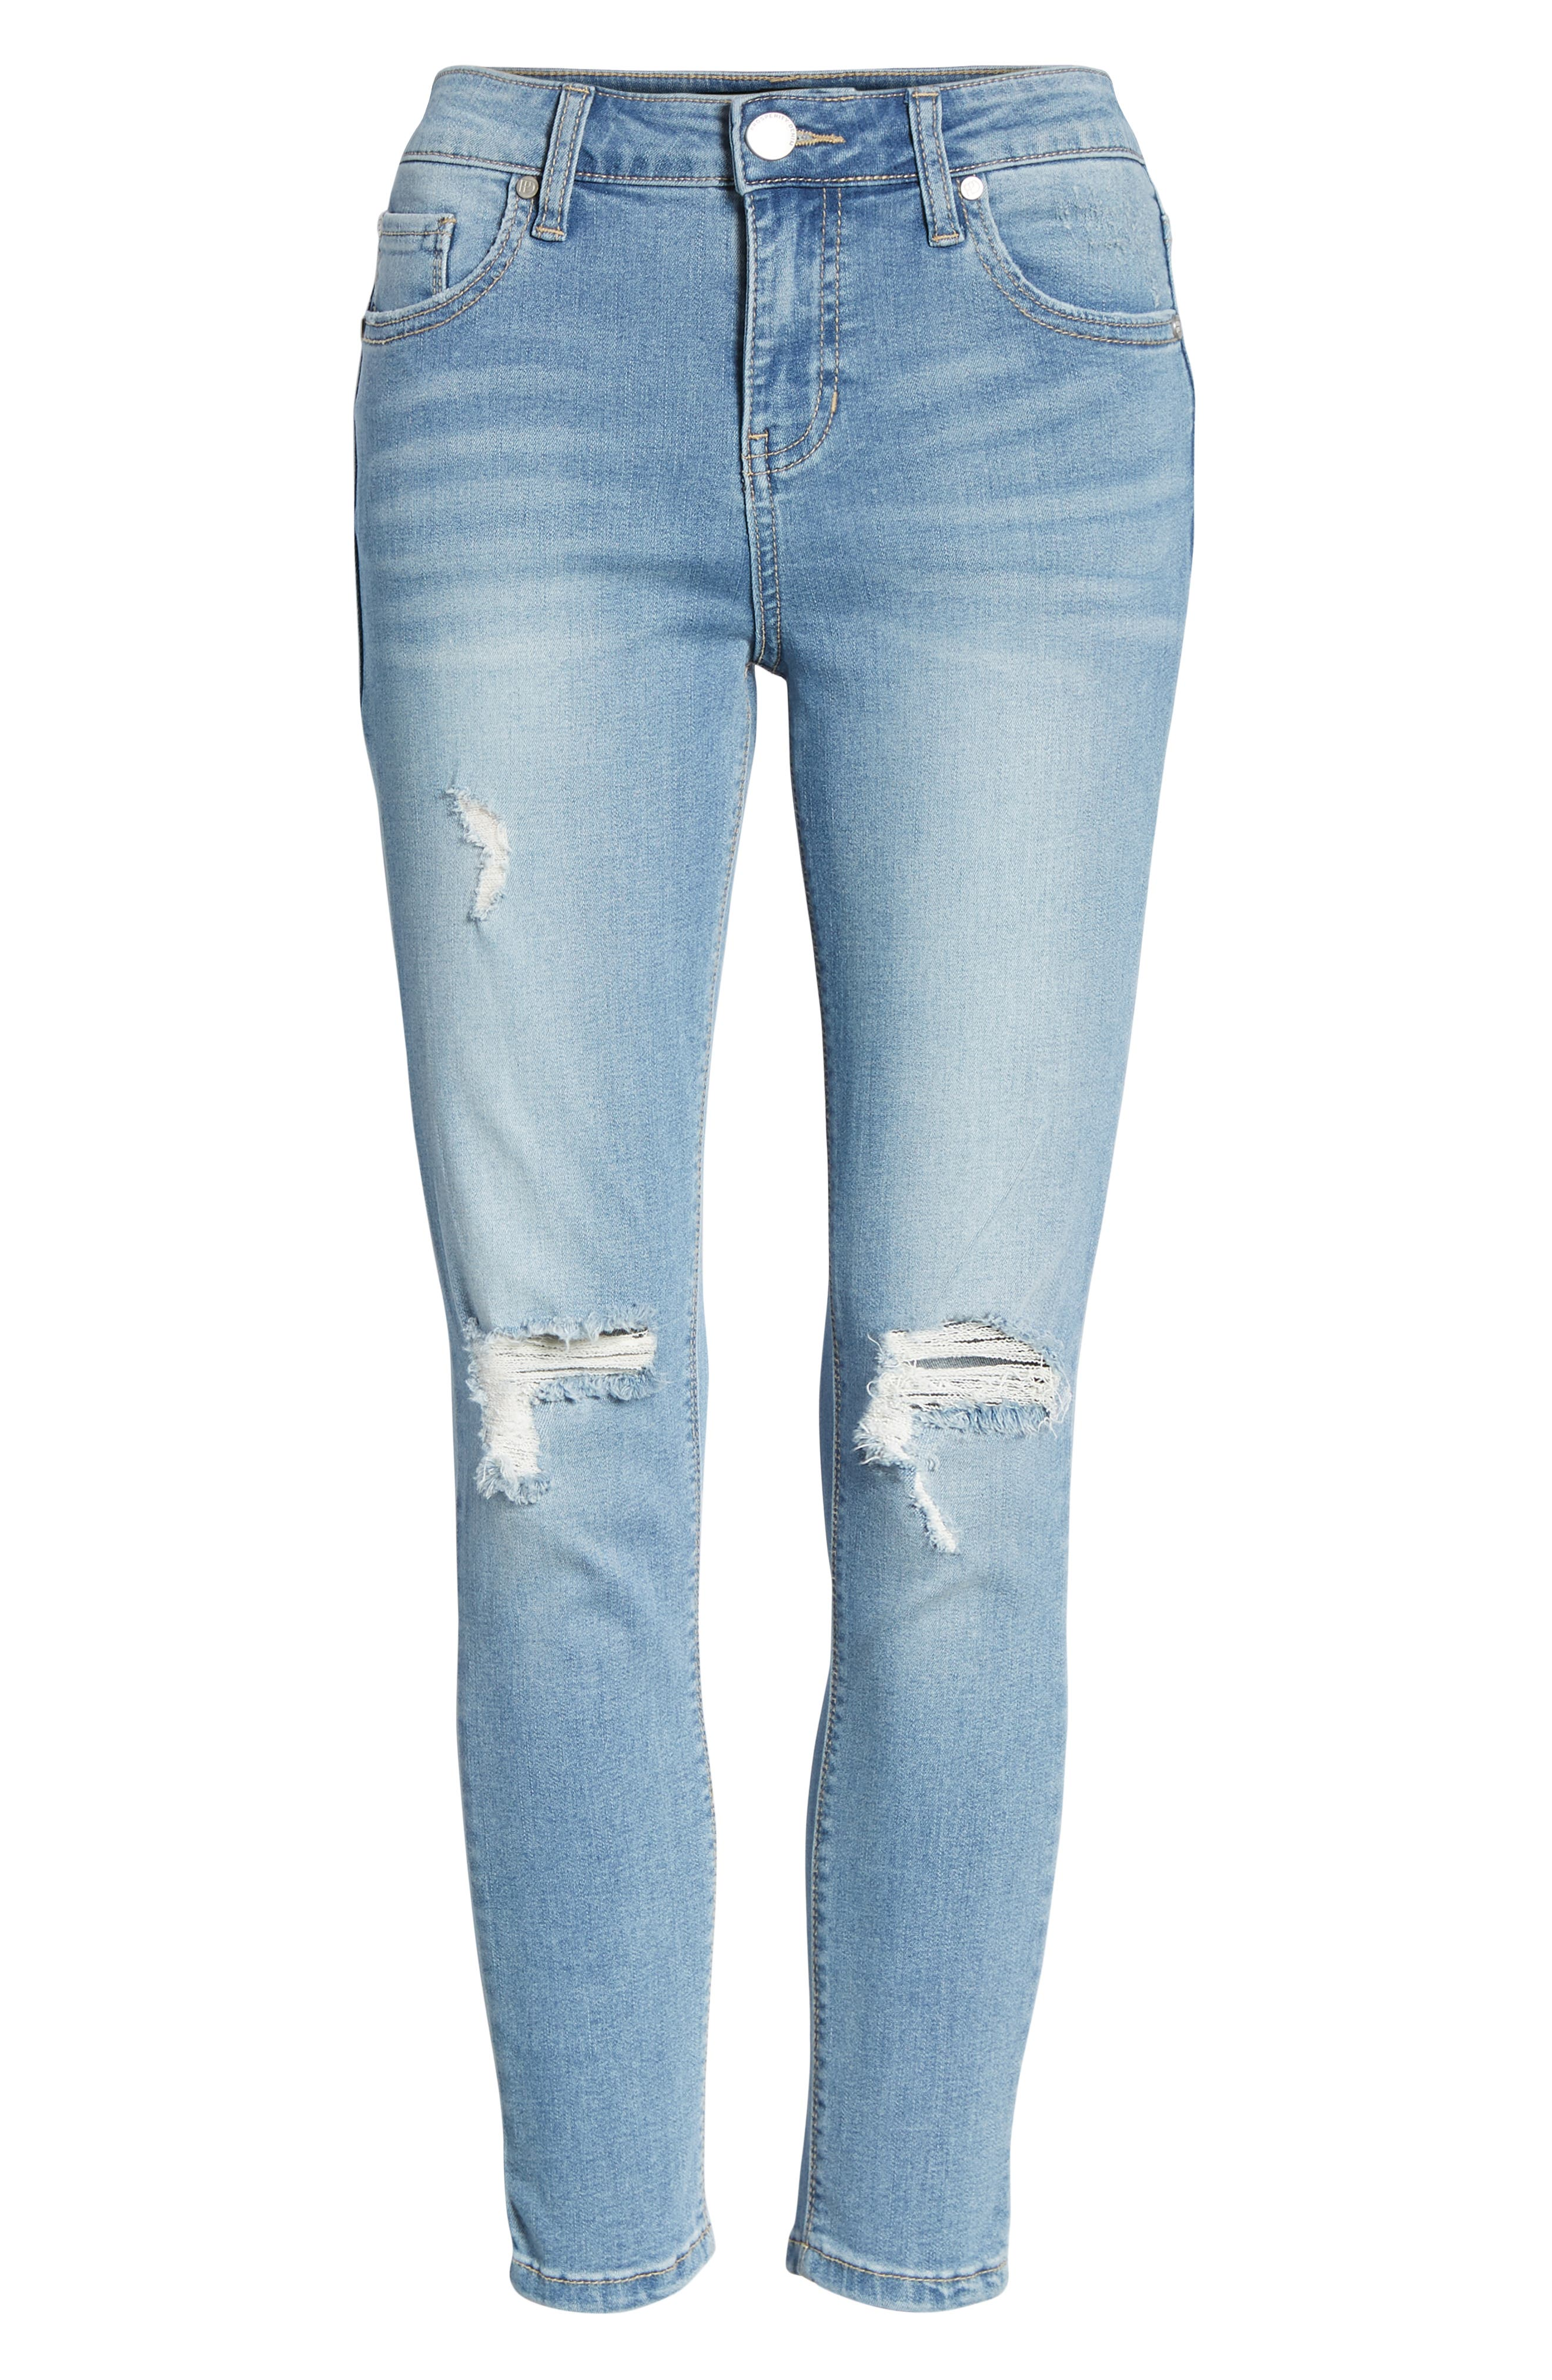 Ripped Crop Skinny Jeans,                             Alternate thumbnail 7, color,                             LUCAS